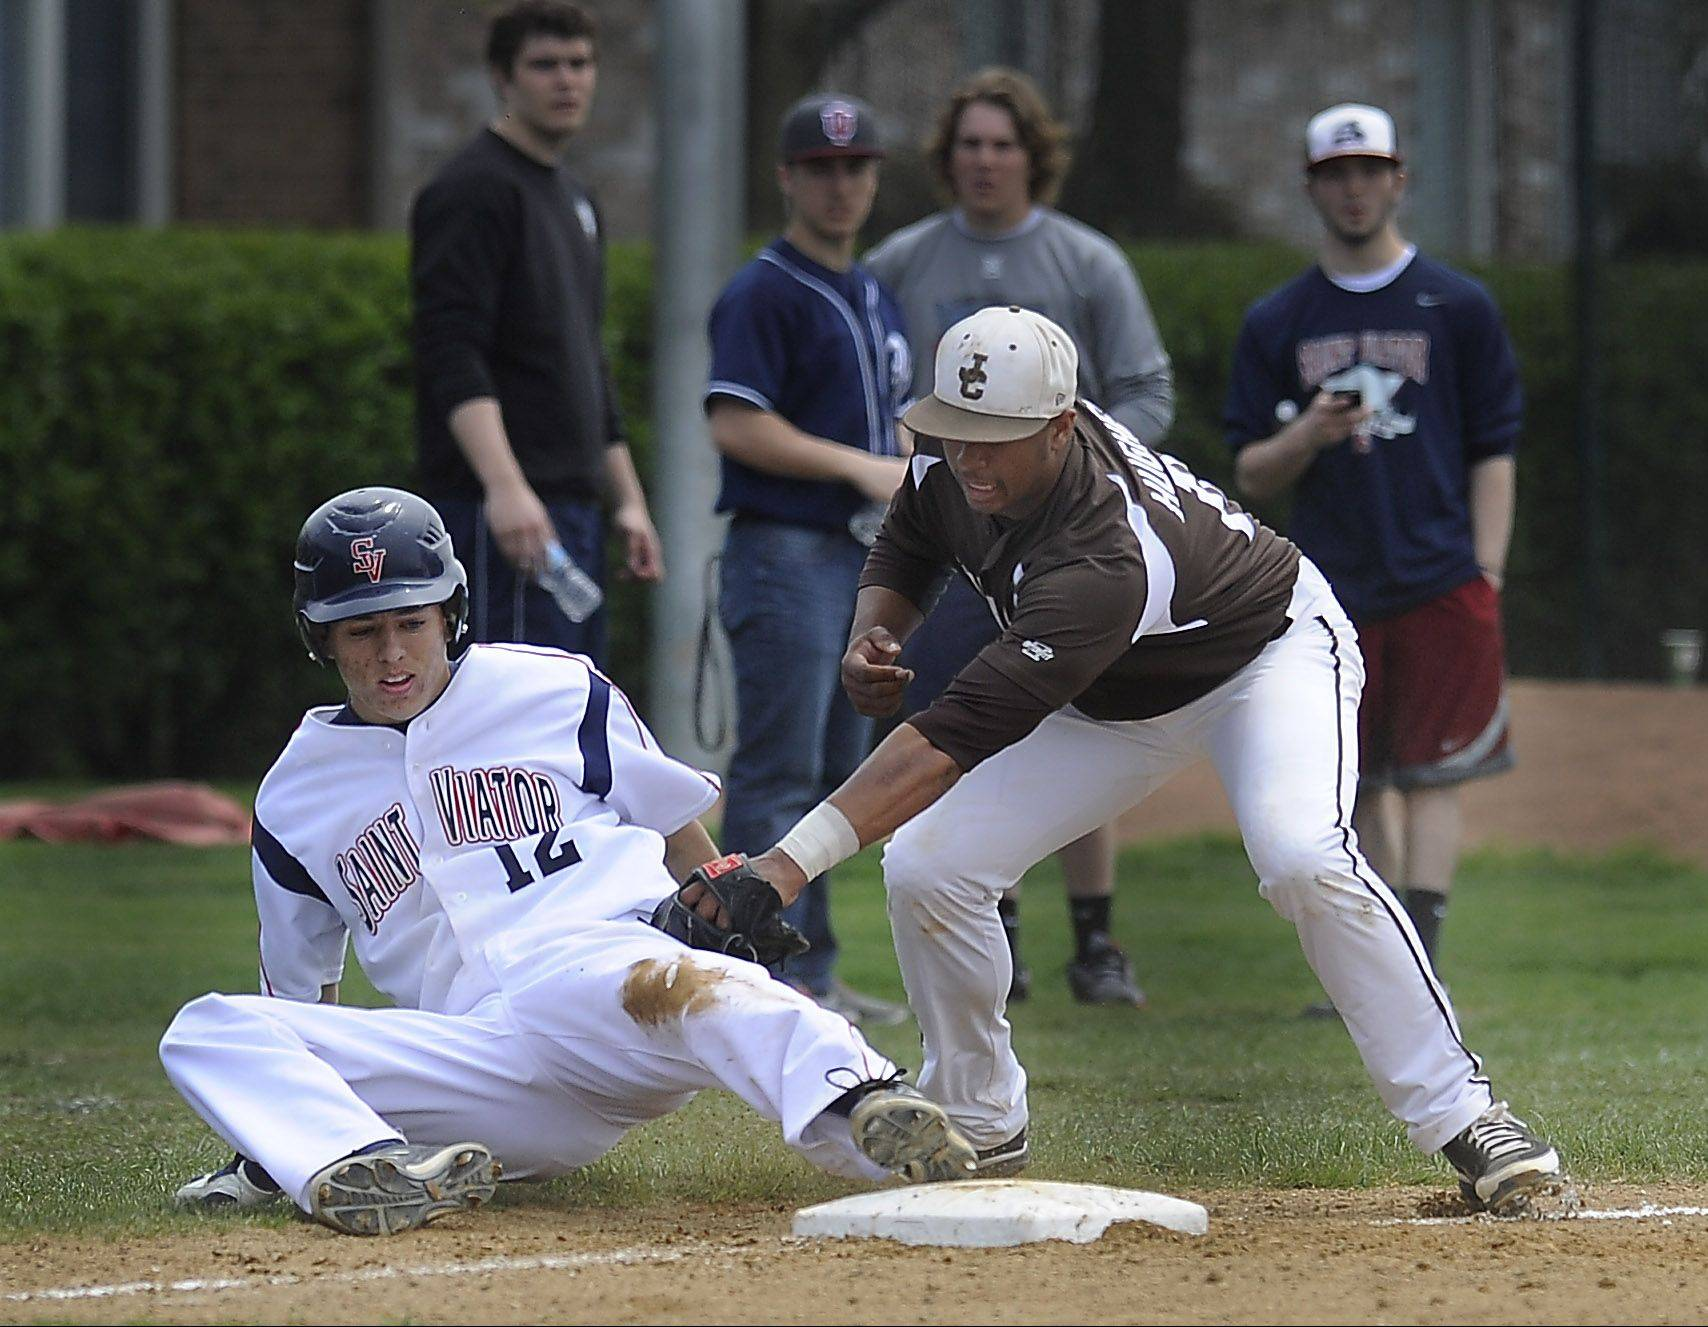 St. Viator�s Andrew Ferrante is called out at third base in the bottom of the third inning as the tag is applied by Joliet Catholic�s Ira Hughes in game one of doubleheader action at St. Viator on Saturday.